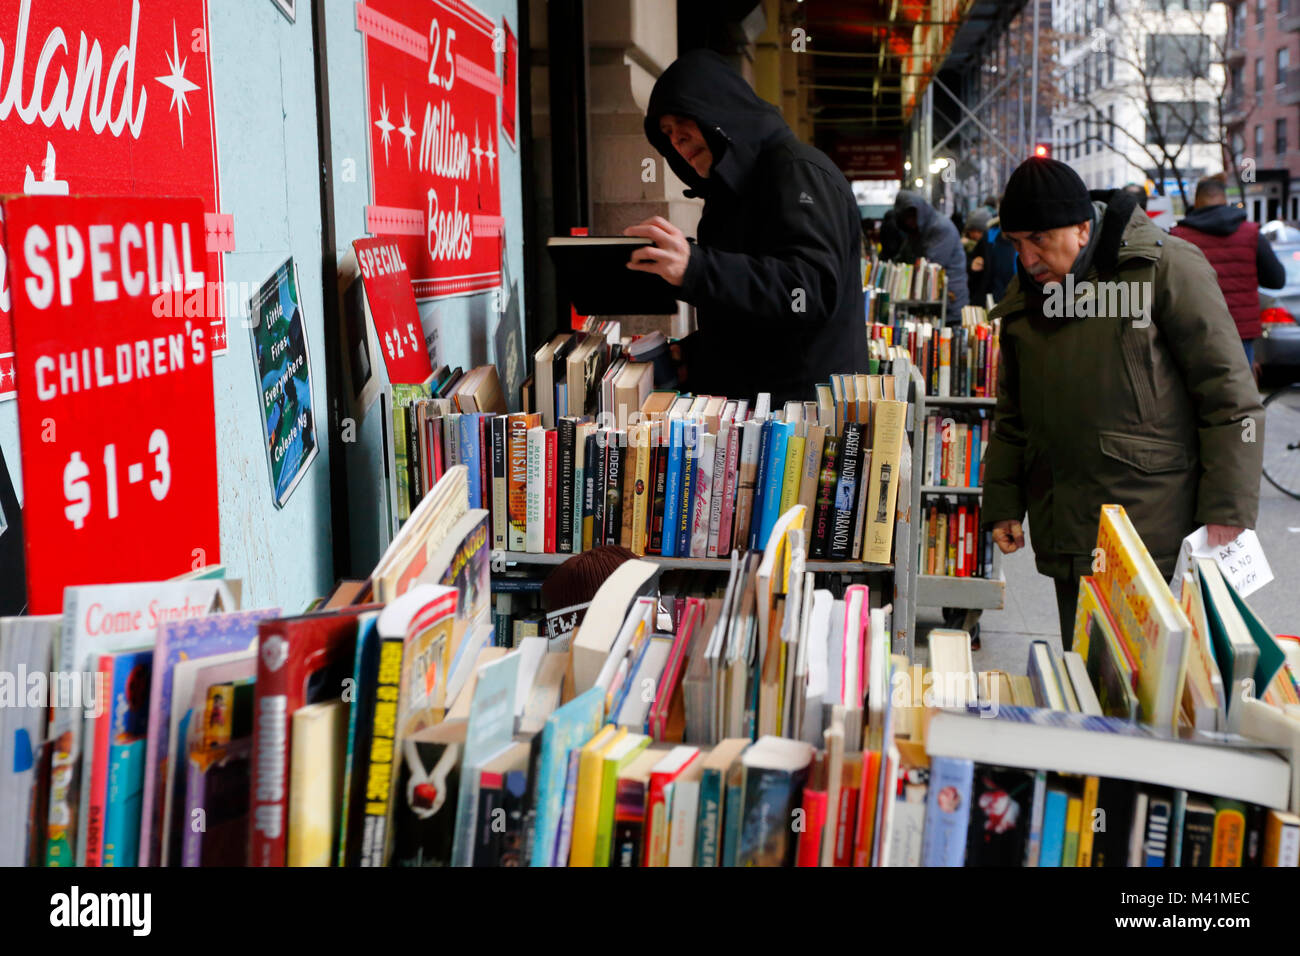 People browsing used books outside Strand Bookstore - Stock Image